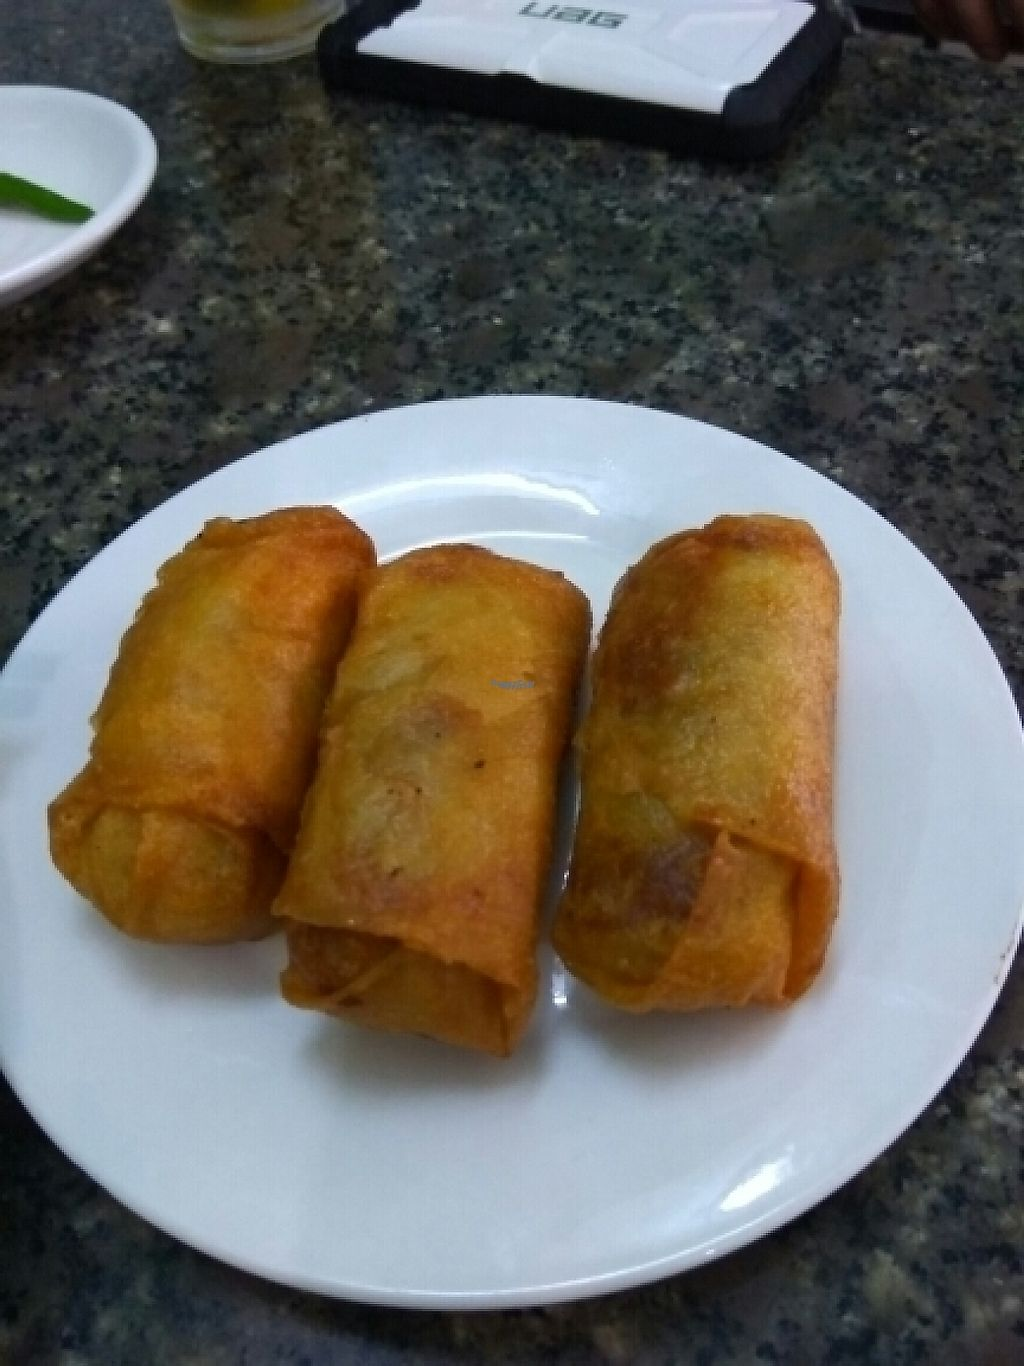 """Photo of Ngoc Chi  by <a href=""""/members/profile/Miggi"""">Miggi</a> <br/>Fried Rolls <br/> January 5, 2017  - <a href='/contact/abuse/image/25980/208312'>Report</a>"""